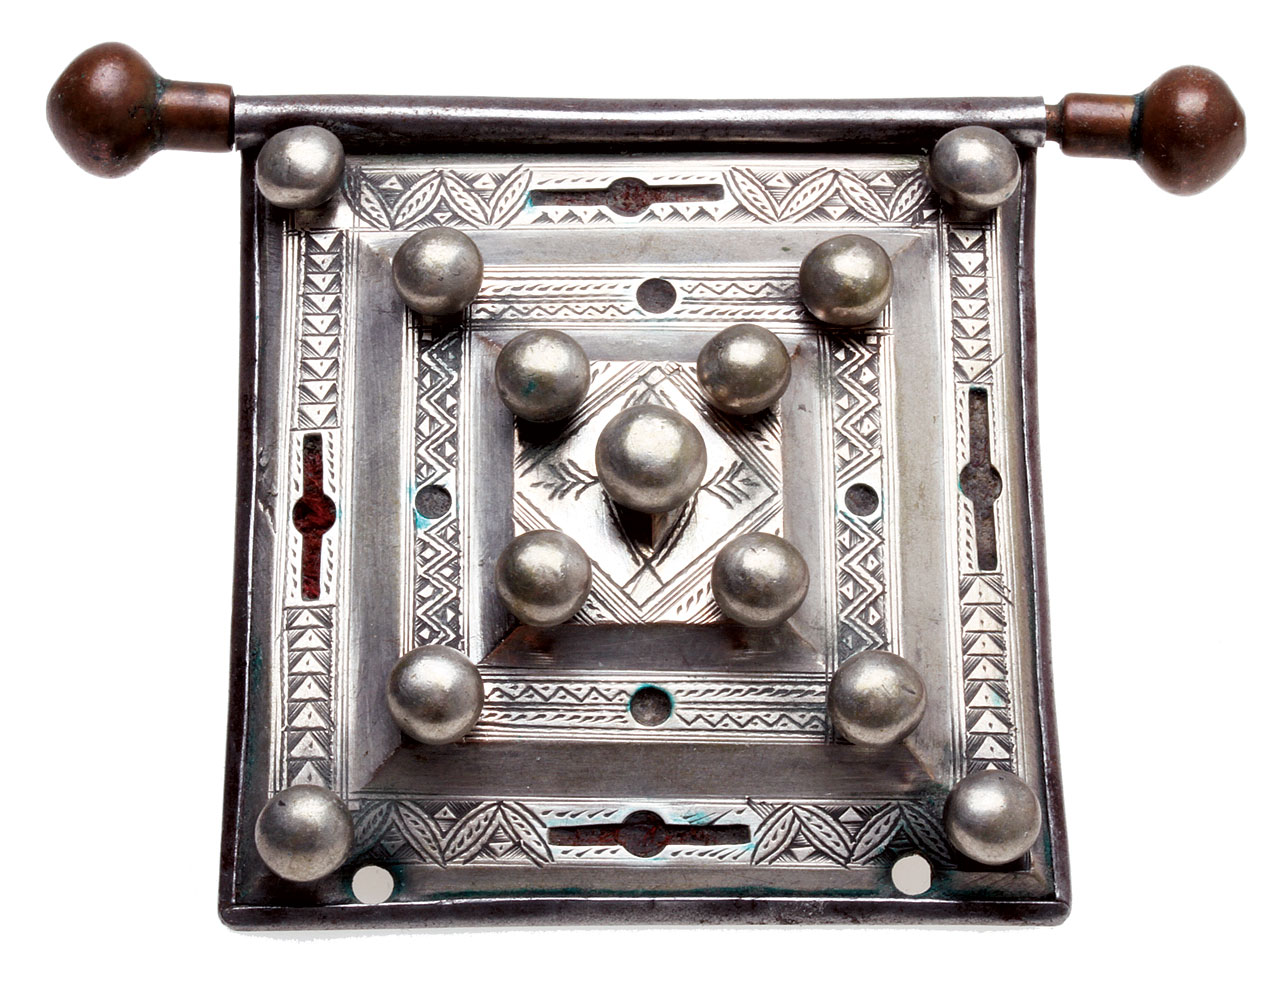 BEAUTIFUL MAURITANIAN OR TUAREG AMULET, of silver, copper with steel back; it has cutouts that once held red and most likely green-colored material, now too faded to determine their original color. The silver balls are decorative, as the stepped front is held onto the steel back by bezels, not rivets. Note the fine engraving. The pendant/amulet is 5.7 centimeters wide, not including the hanger.